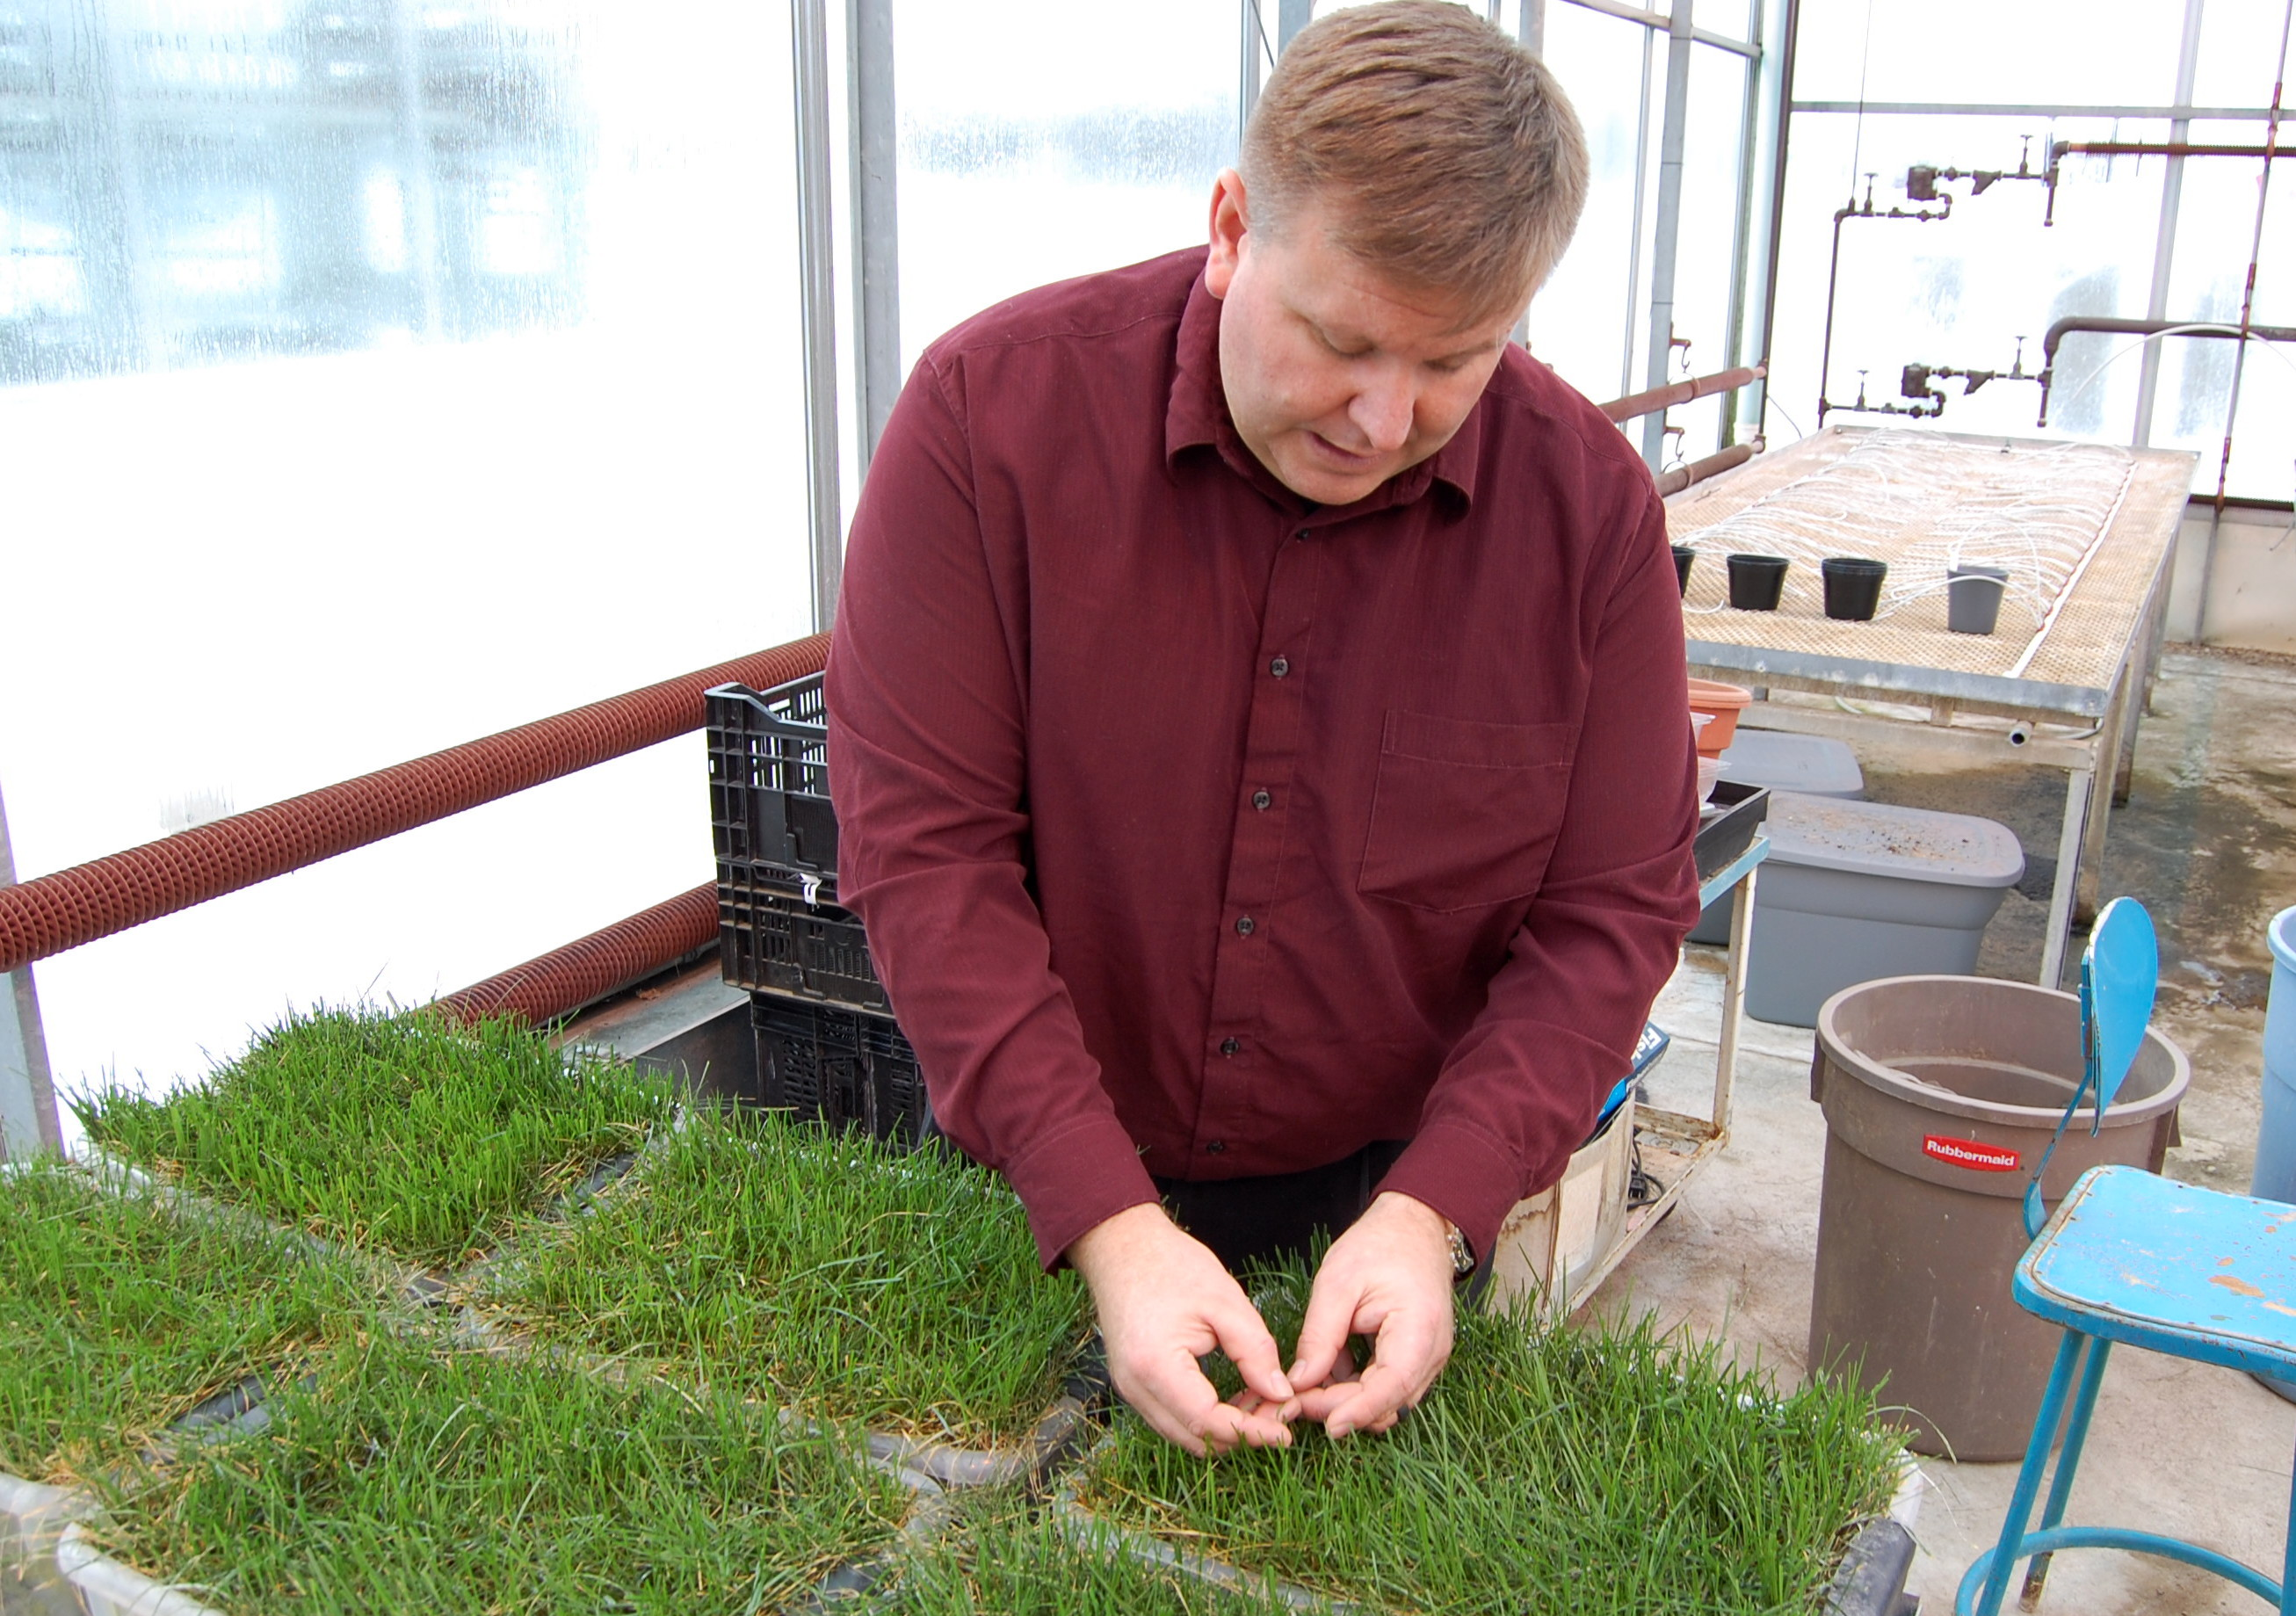 Eric Lyons checks on a blend of grasses he planted for the Blue Jays project inside a University of Guelph greenhouse (Greg Mercer)